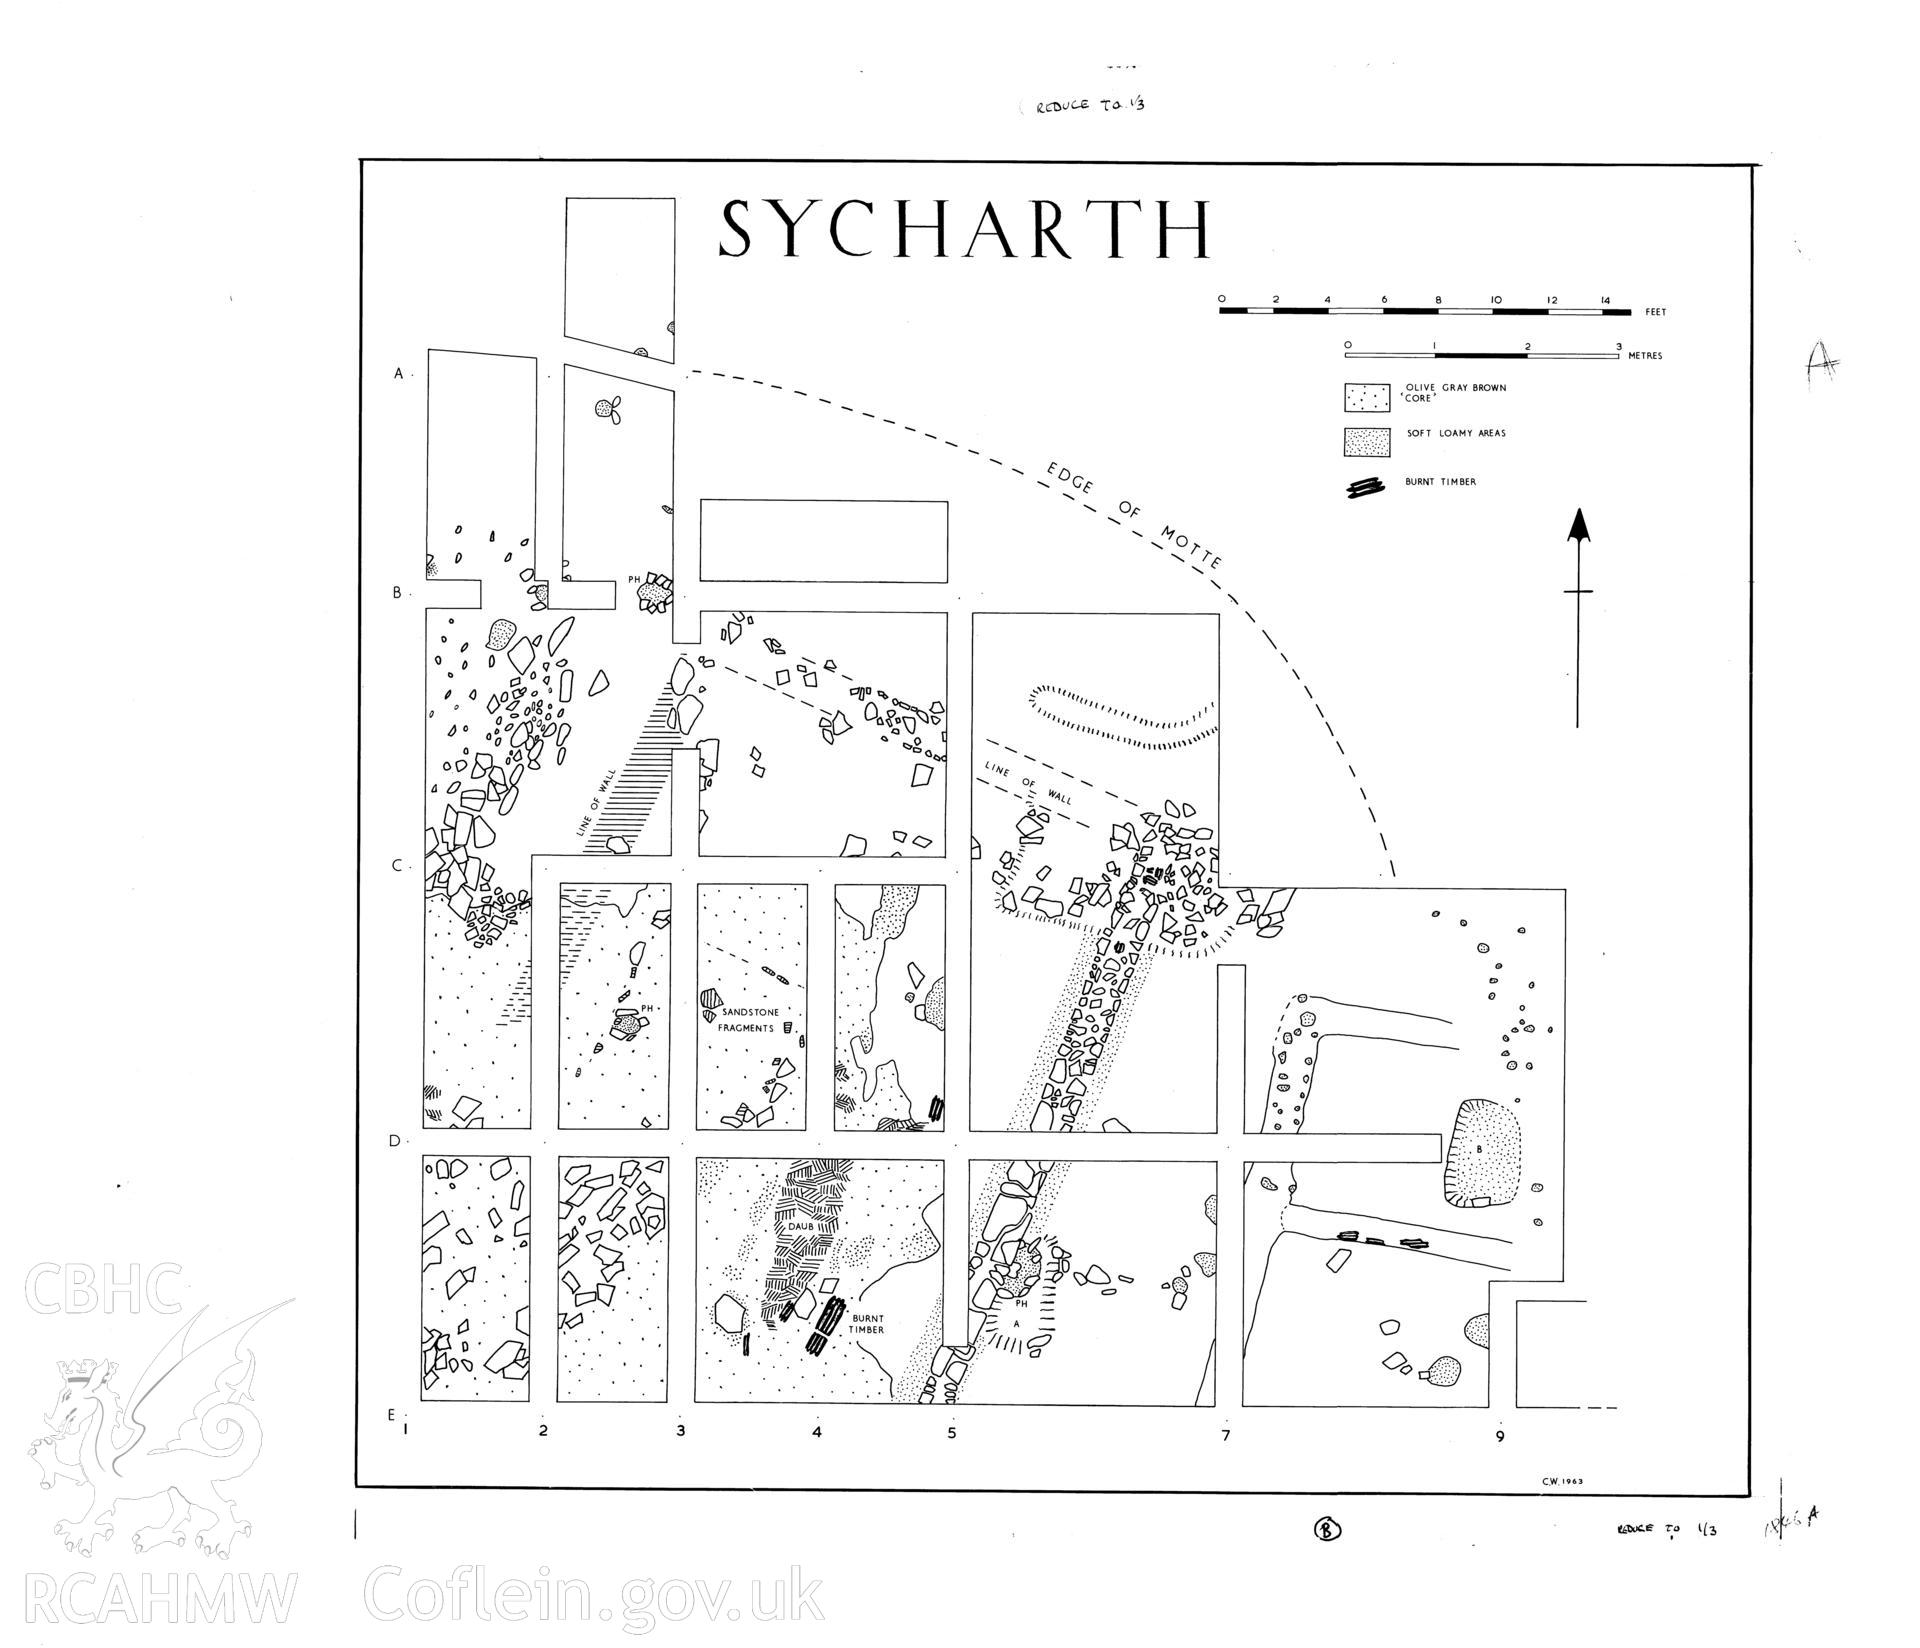 Sycharth Castle, Llansilin; ink drawing by Douglas Hague showing plan of the structure on top of the motte, produced following excavations of 1962-63 and published in Archaeologia Cambrensis Vol CXV, 1966, fig 4.